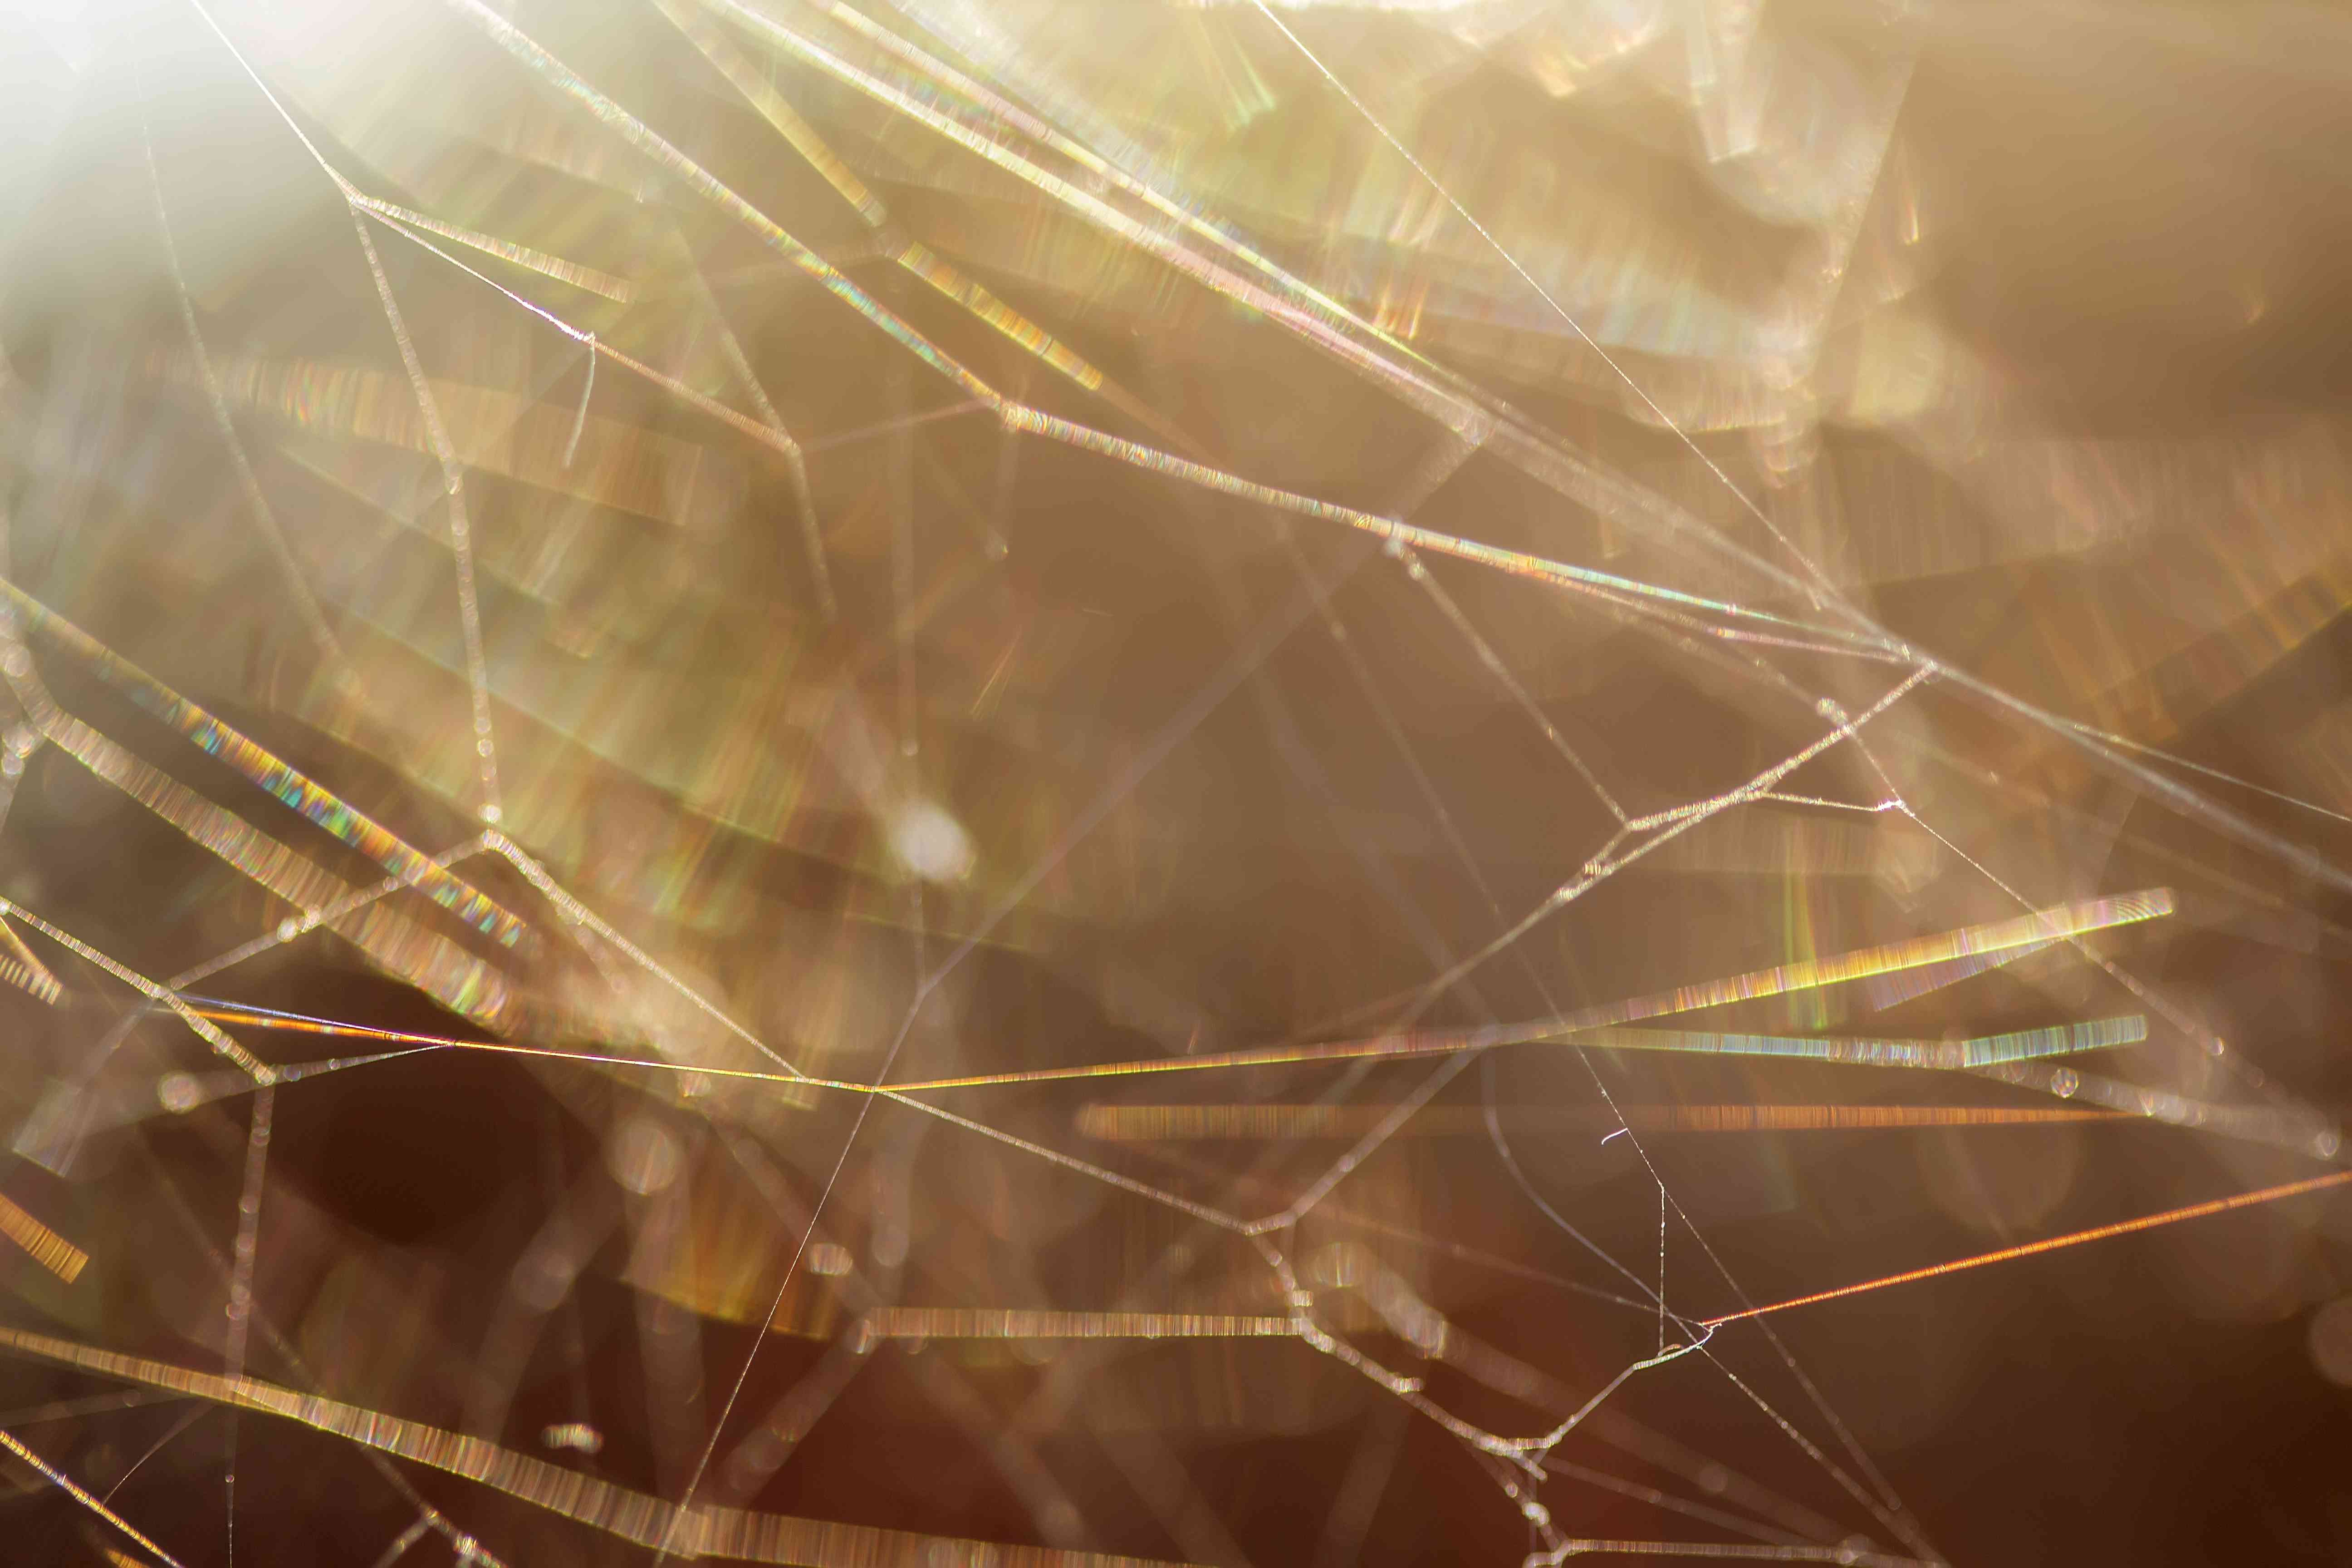 cobwebs can serve as transition homes for house spiders